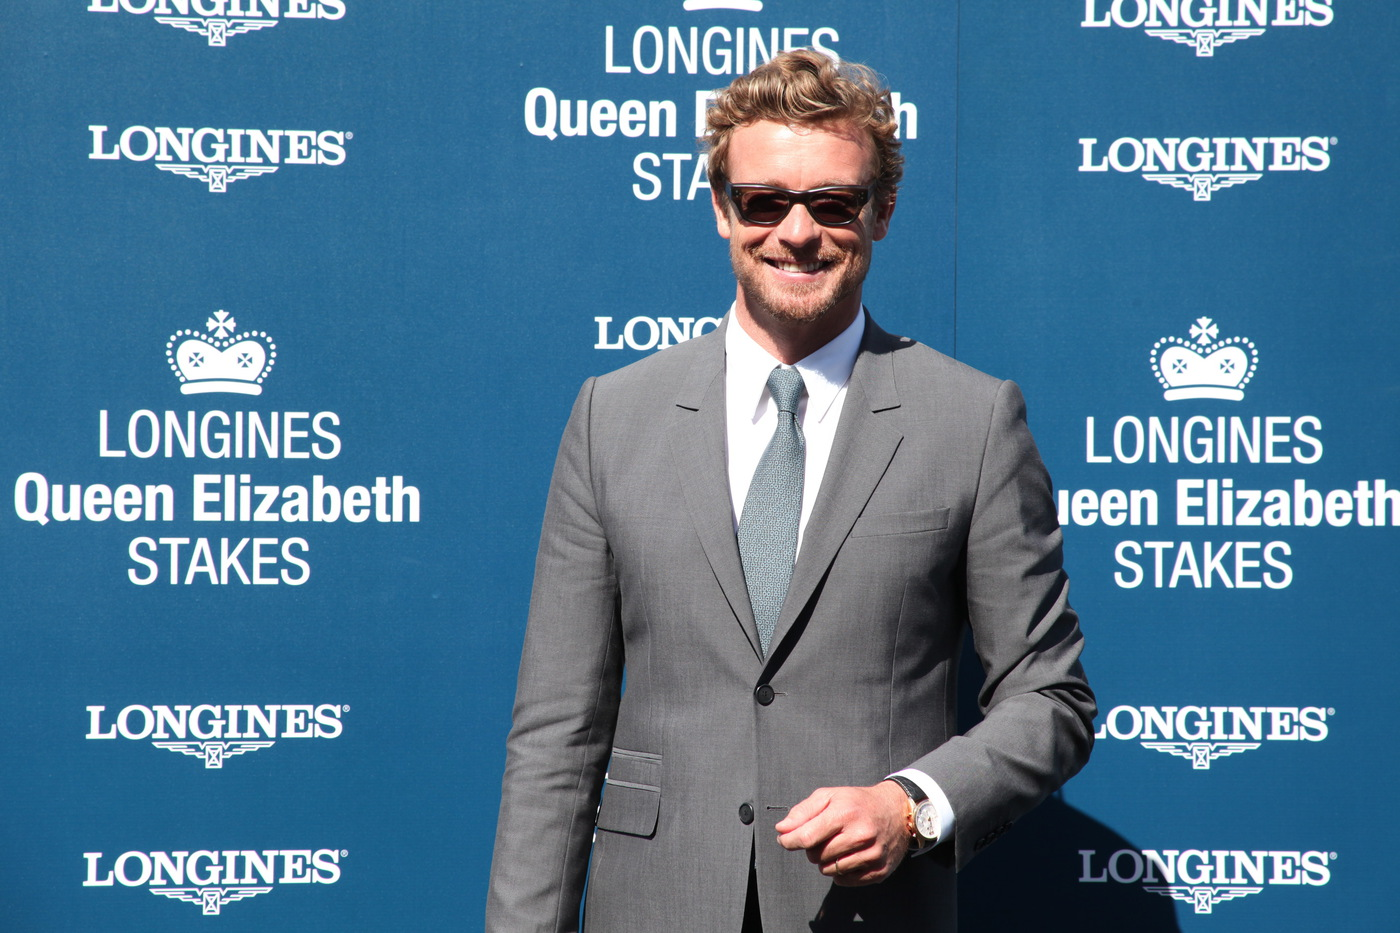 Longines Flat Racing Event: 2014 edition of the Longines Queen Elizabeth Stakes Raceday with the presence of Simon Baker 2